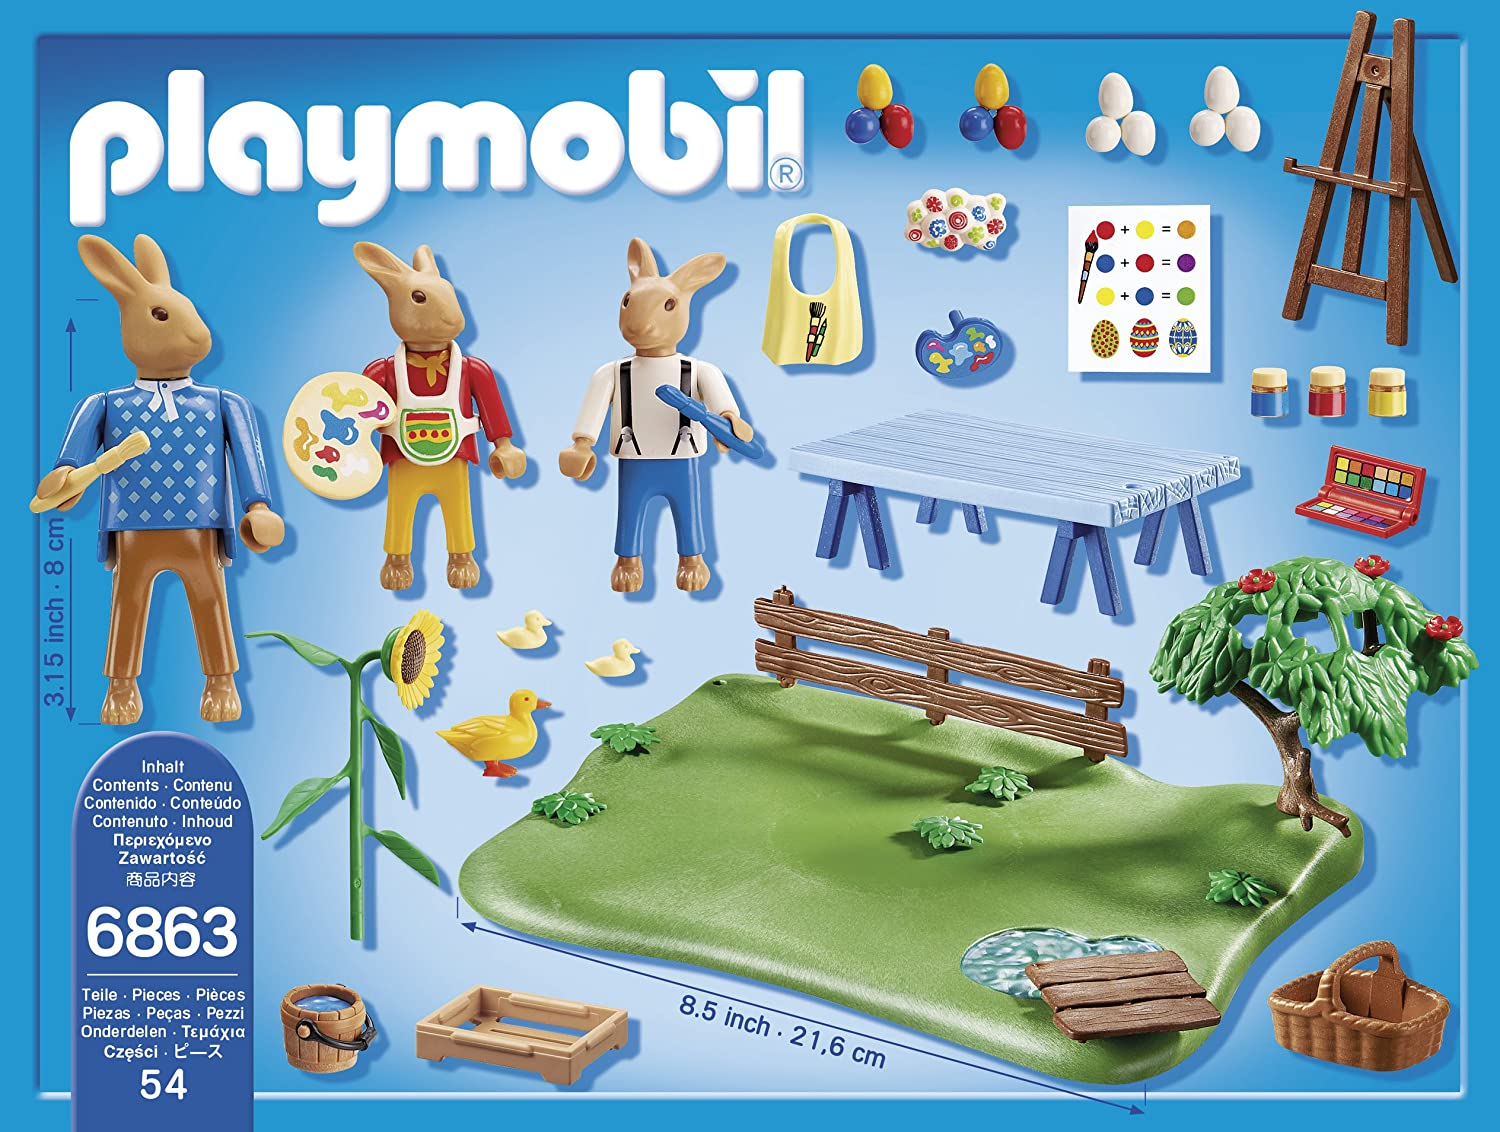 Playmobil Pascua Easter Bunny Workshop Playset 6863: Amazon.es: Juguetes y juegos